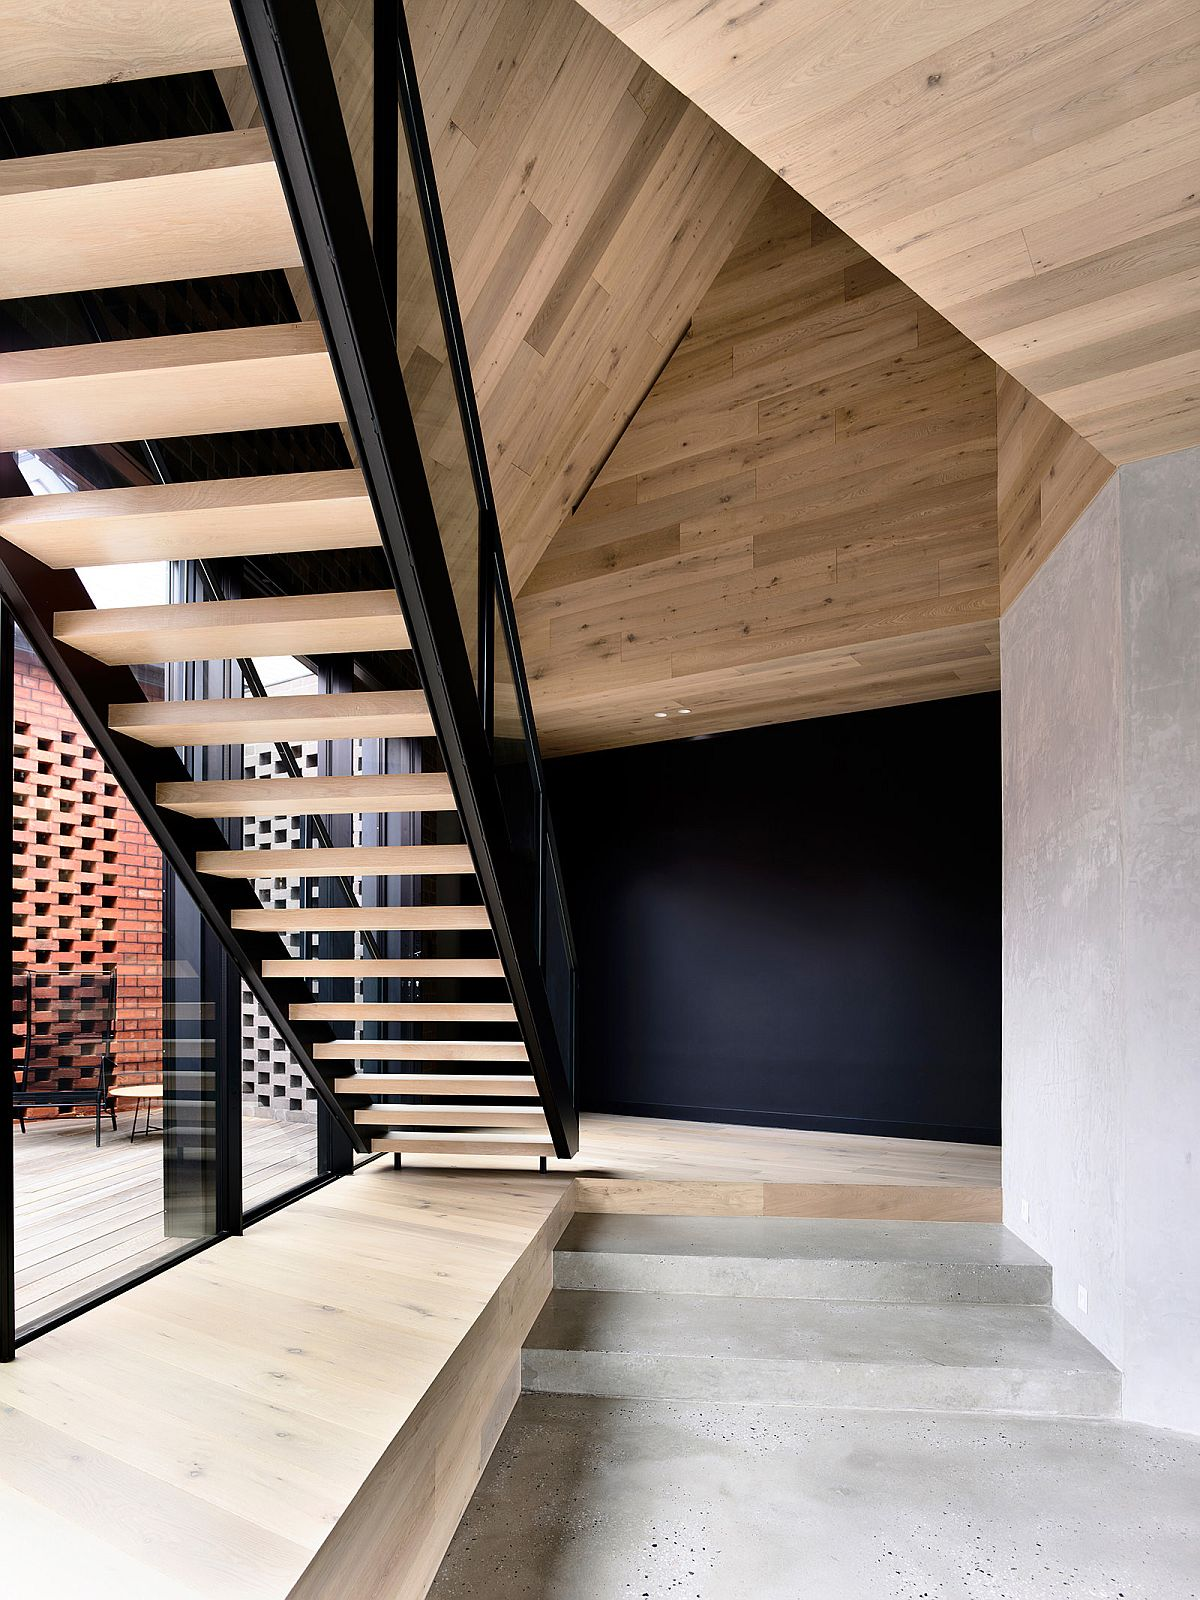 Glass walls bring natural light into the home with a new, sculptural staircase